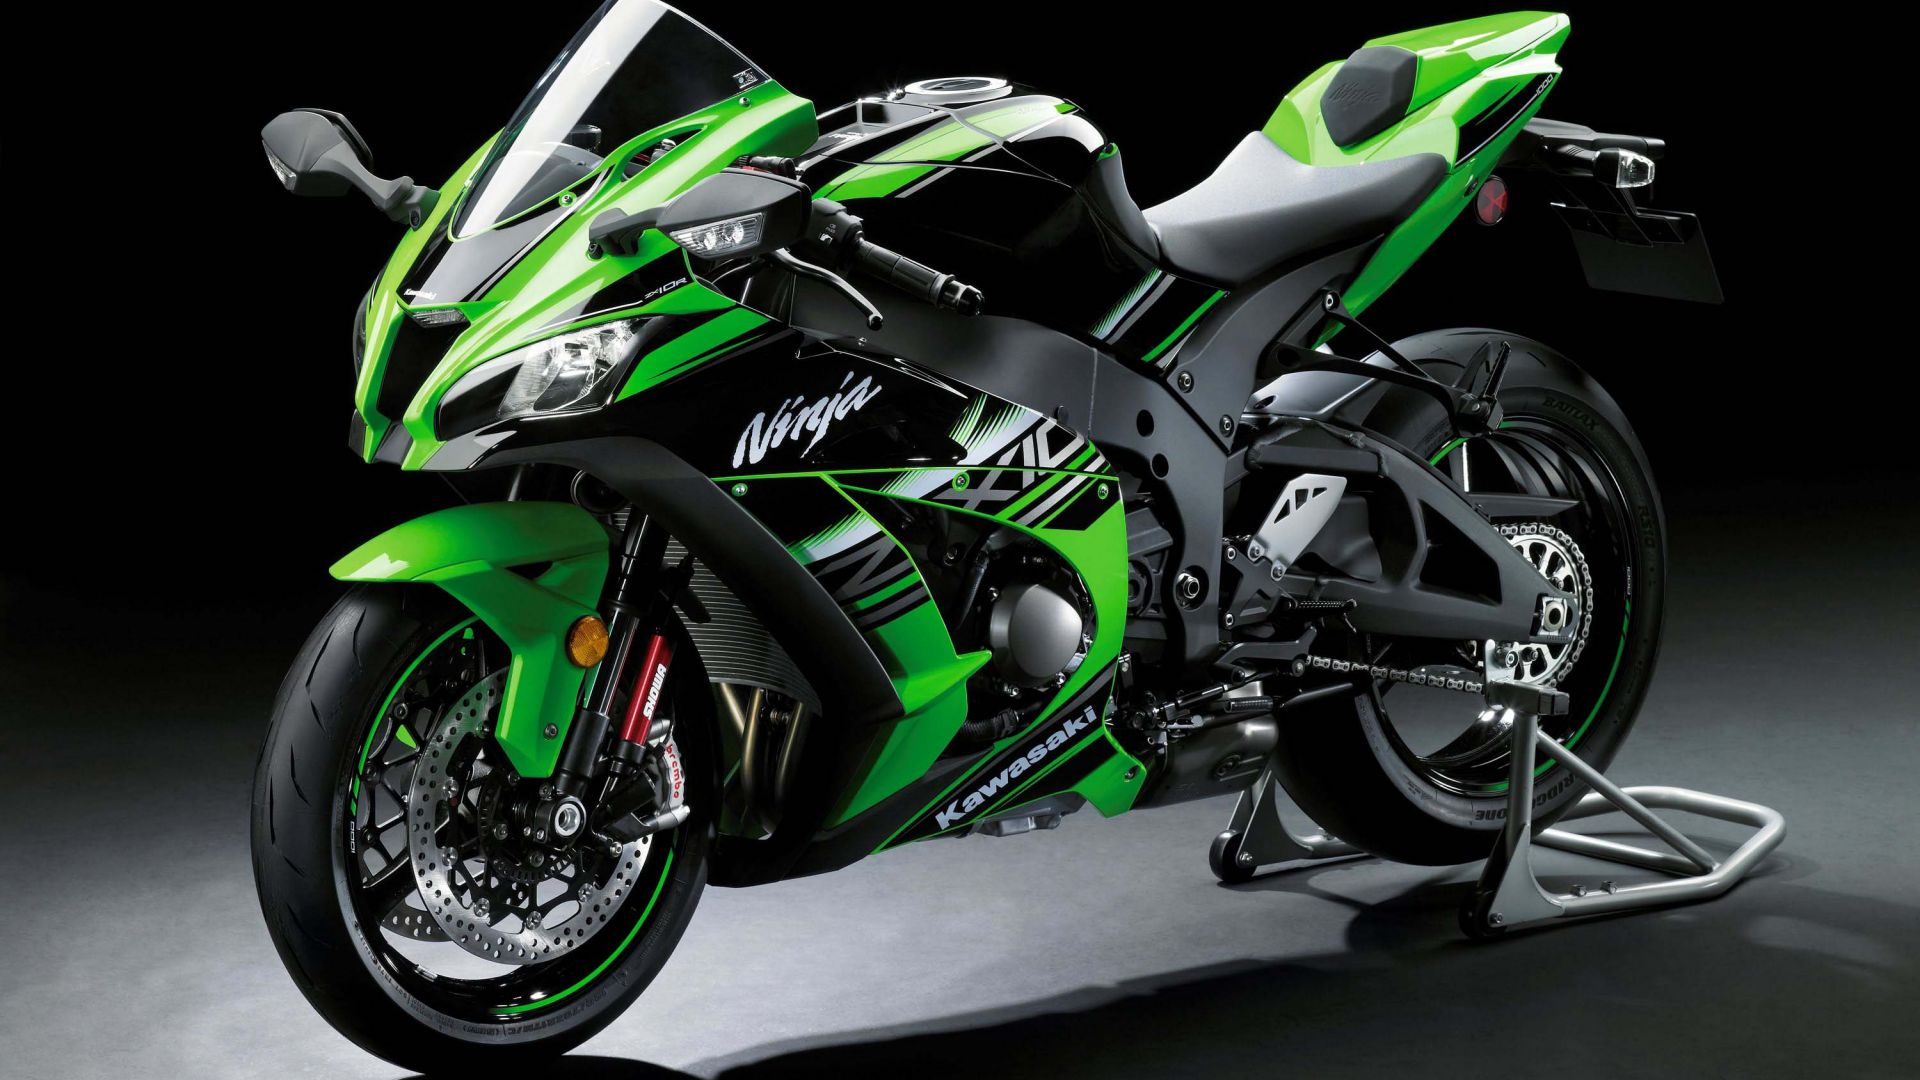 Kawasaki ZX-10R, Intermot 2016, WorldSBK, green, best bikes (horizontal)